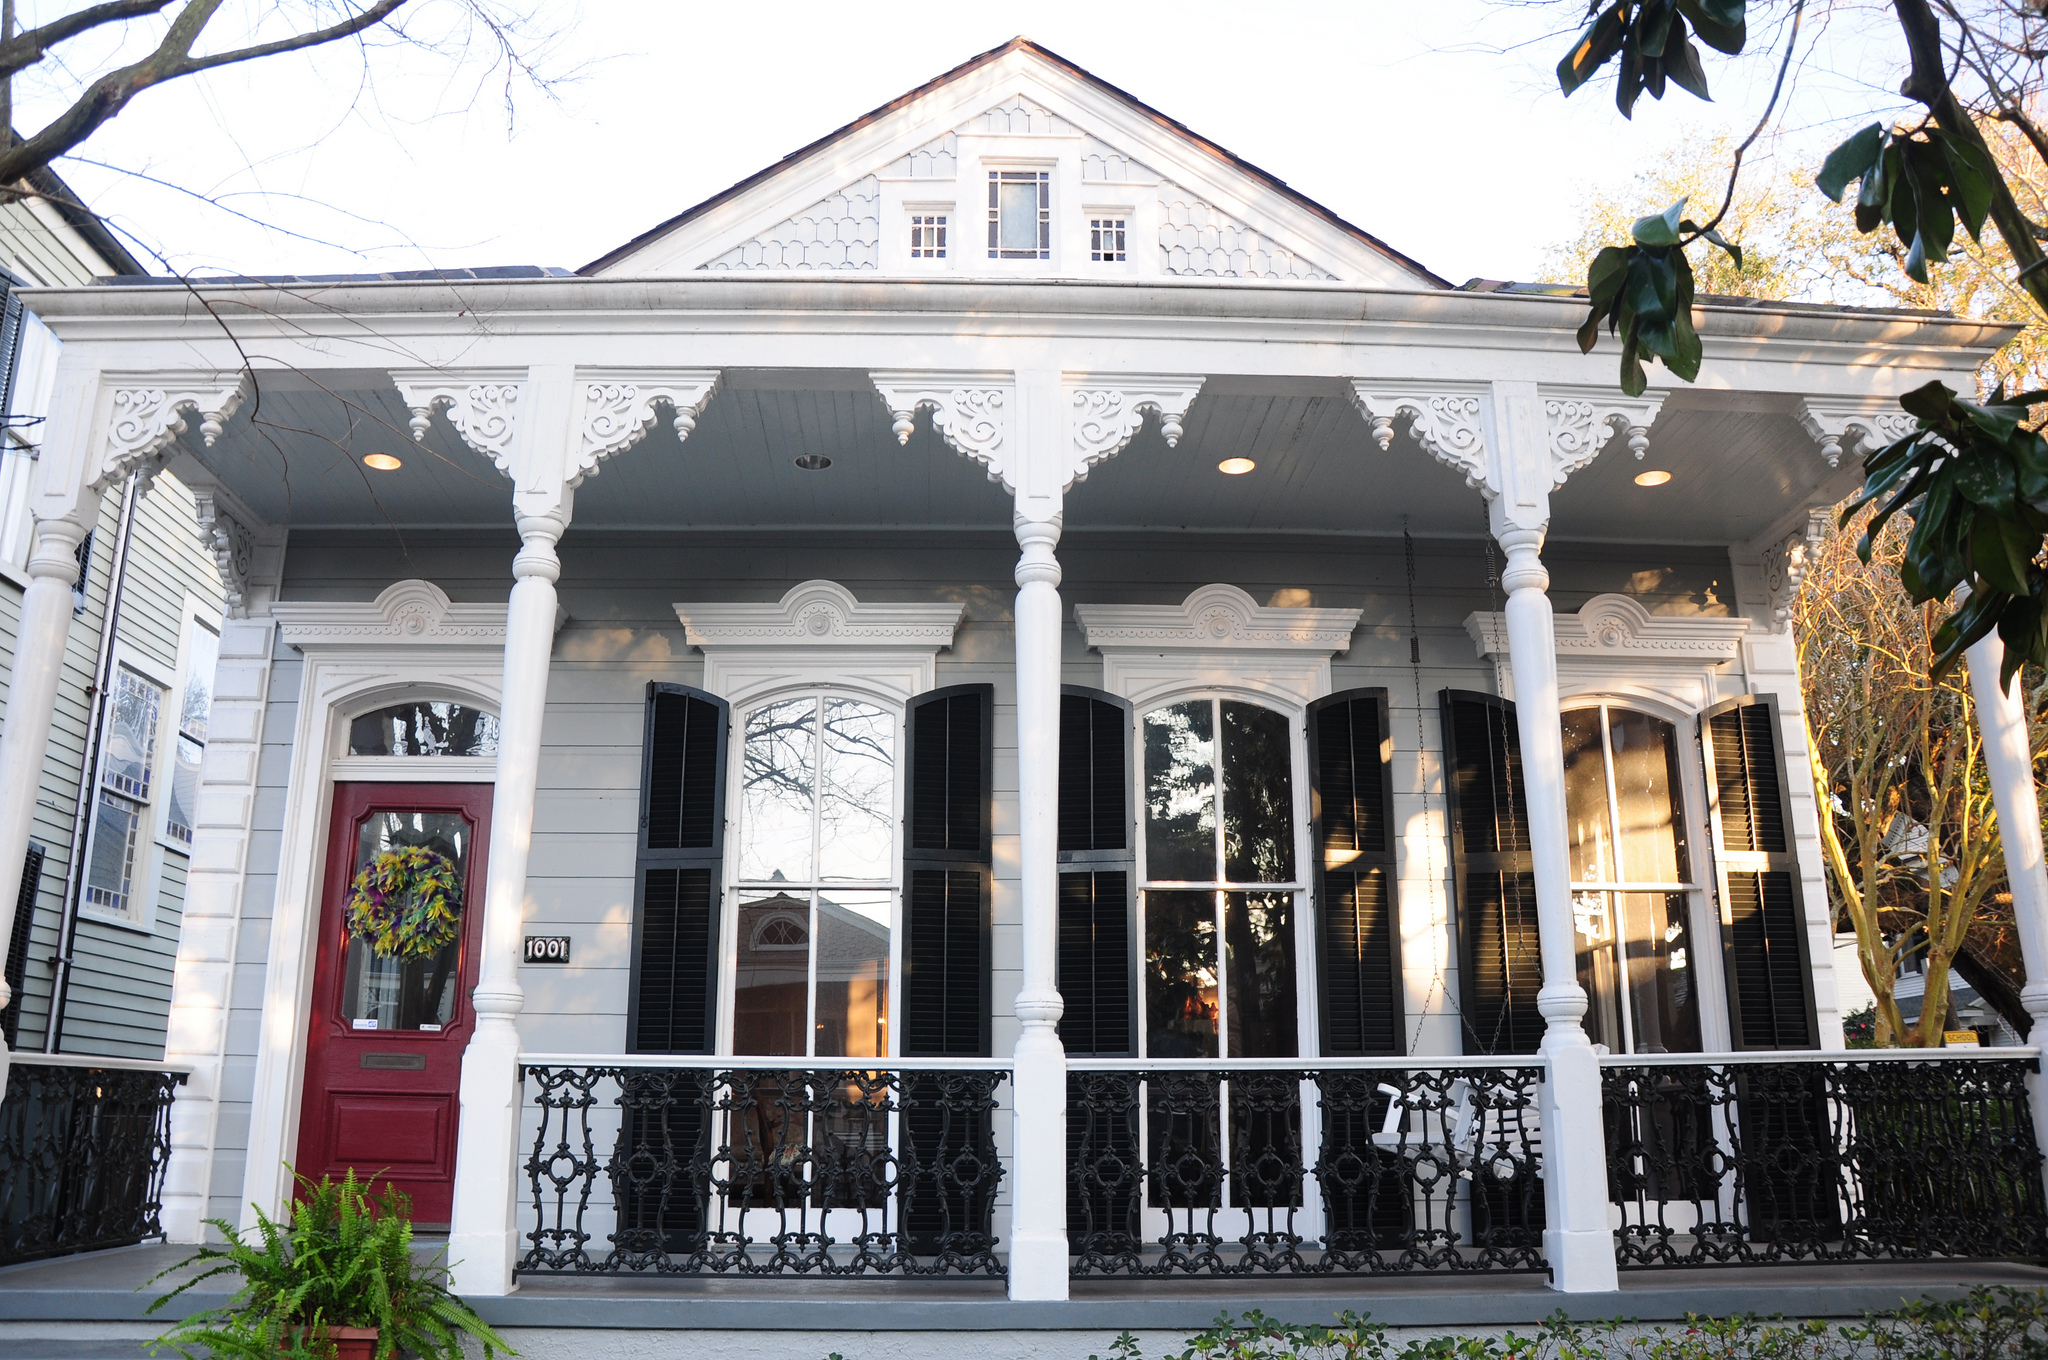 The history of a home the shotgun neworleans me for New orleans shotgun house plans